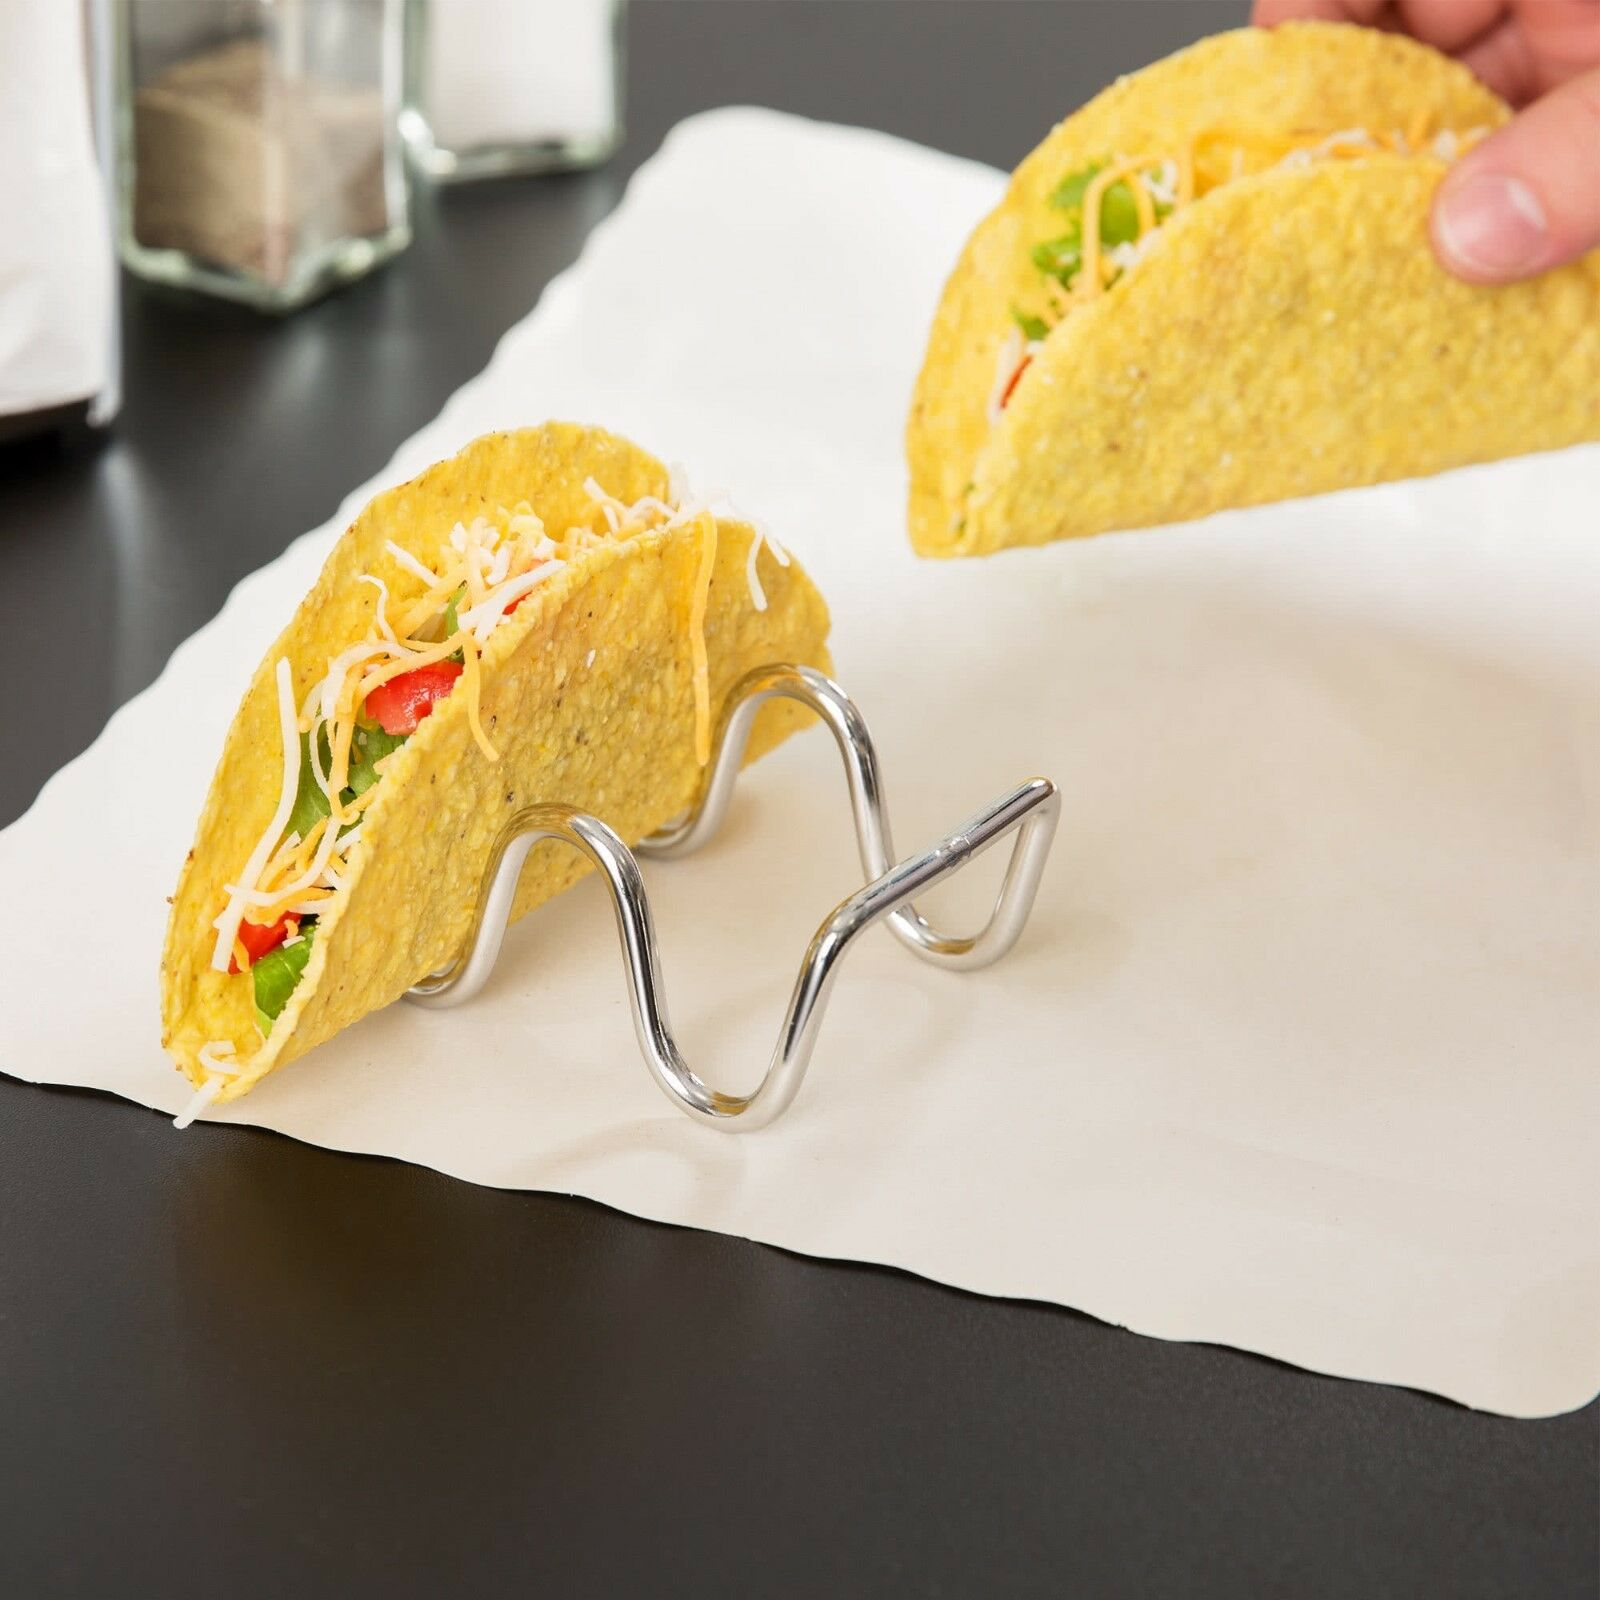 TACO TAXI STAINLESS STEEL - Mabrook Hotel Supplies